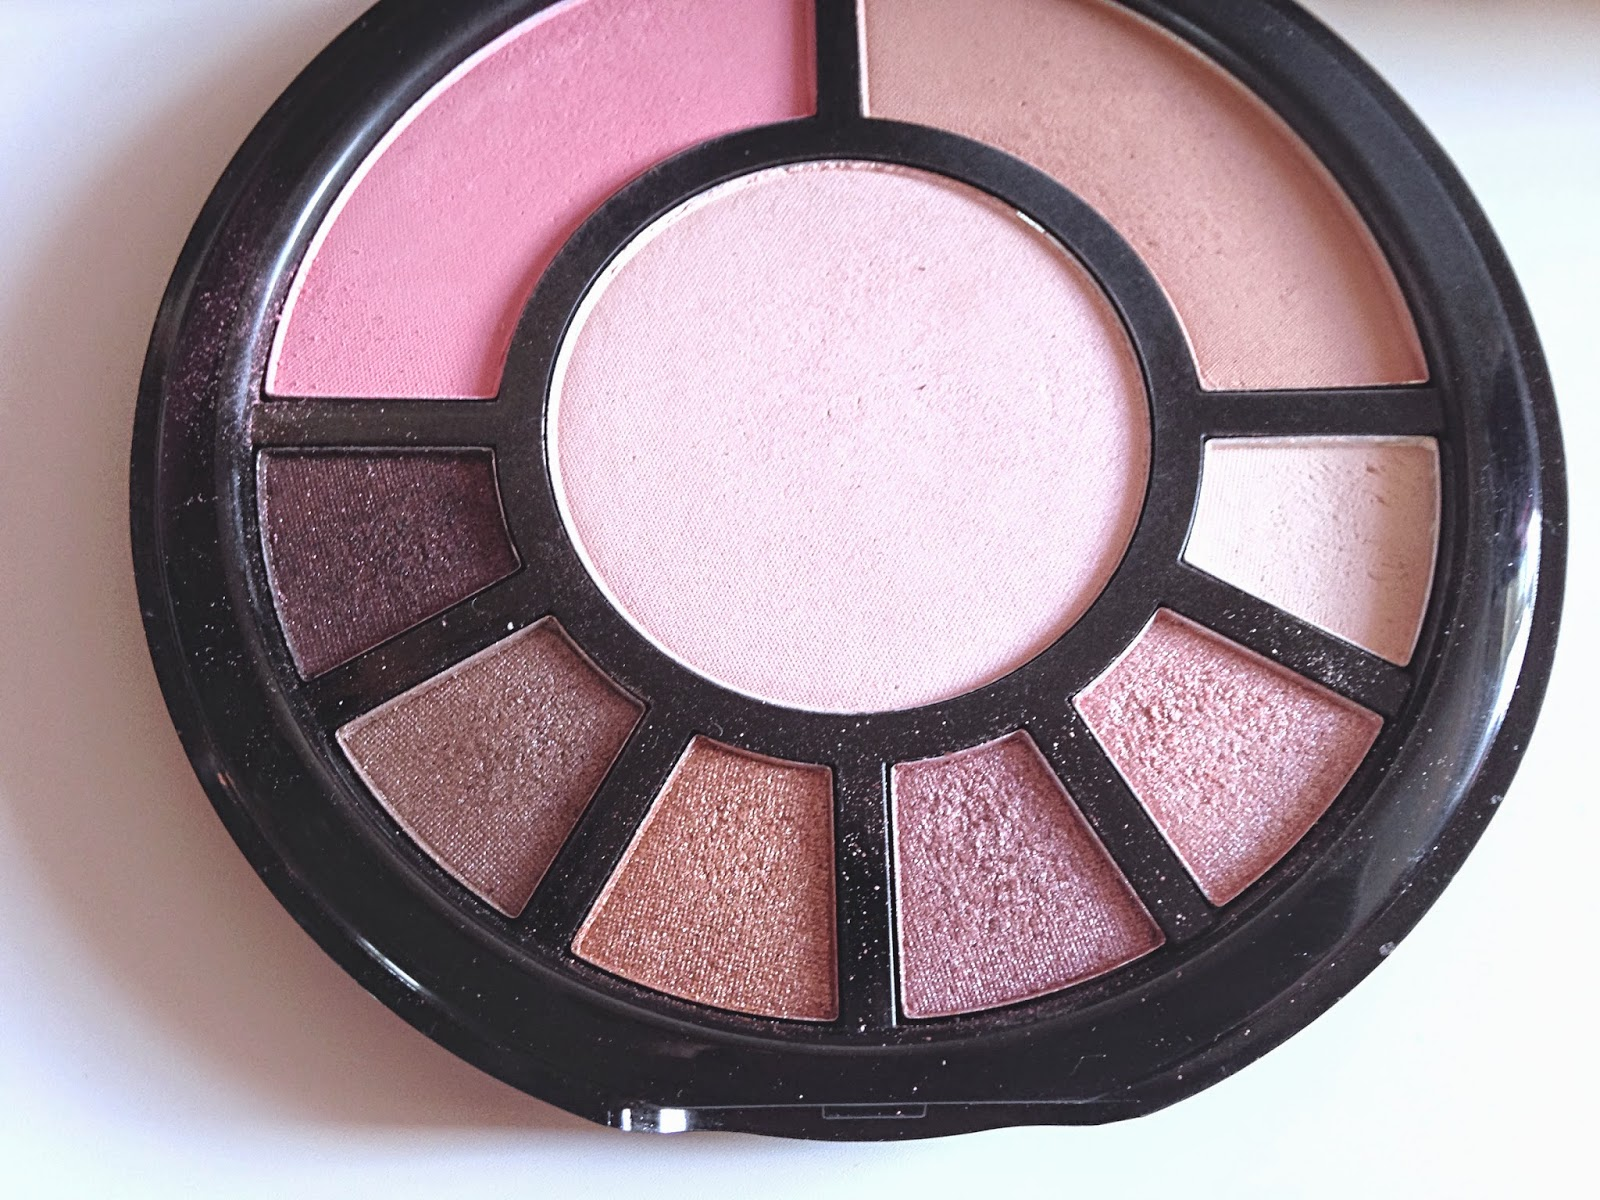 I ♥ Makeup Go! Palette Makeup Revolution